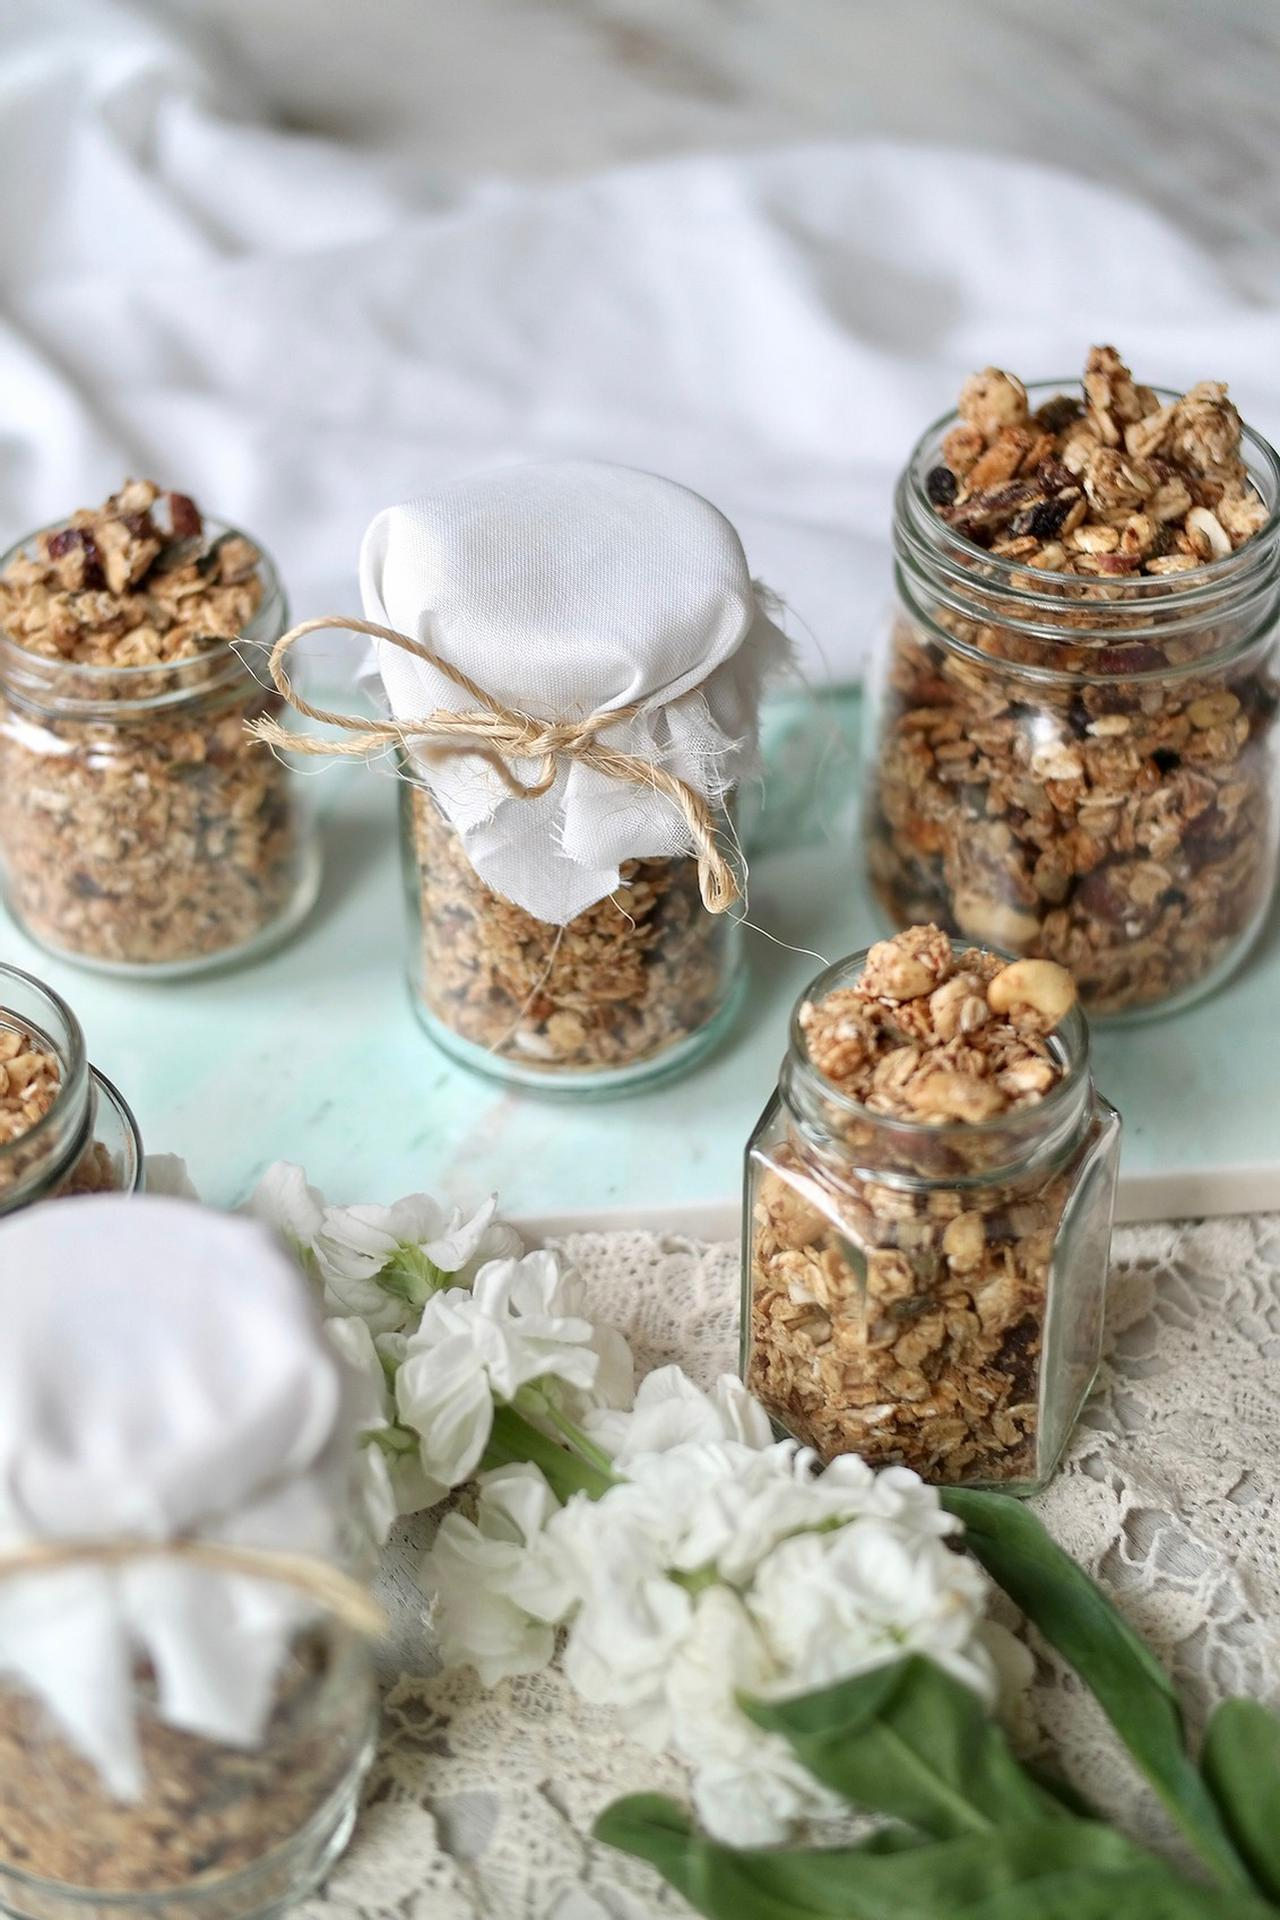 Main image of Healthiest Ever Granola